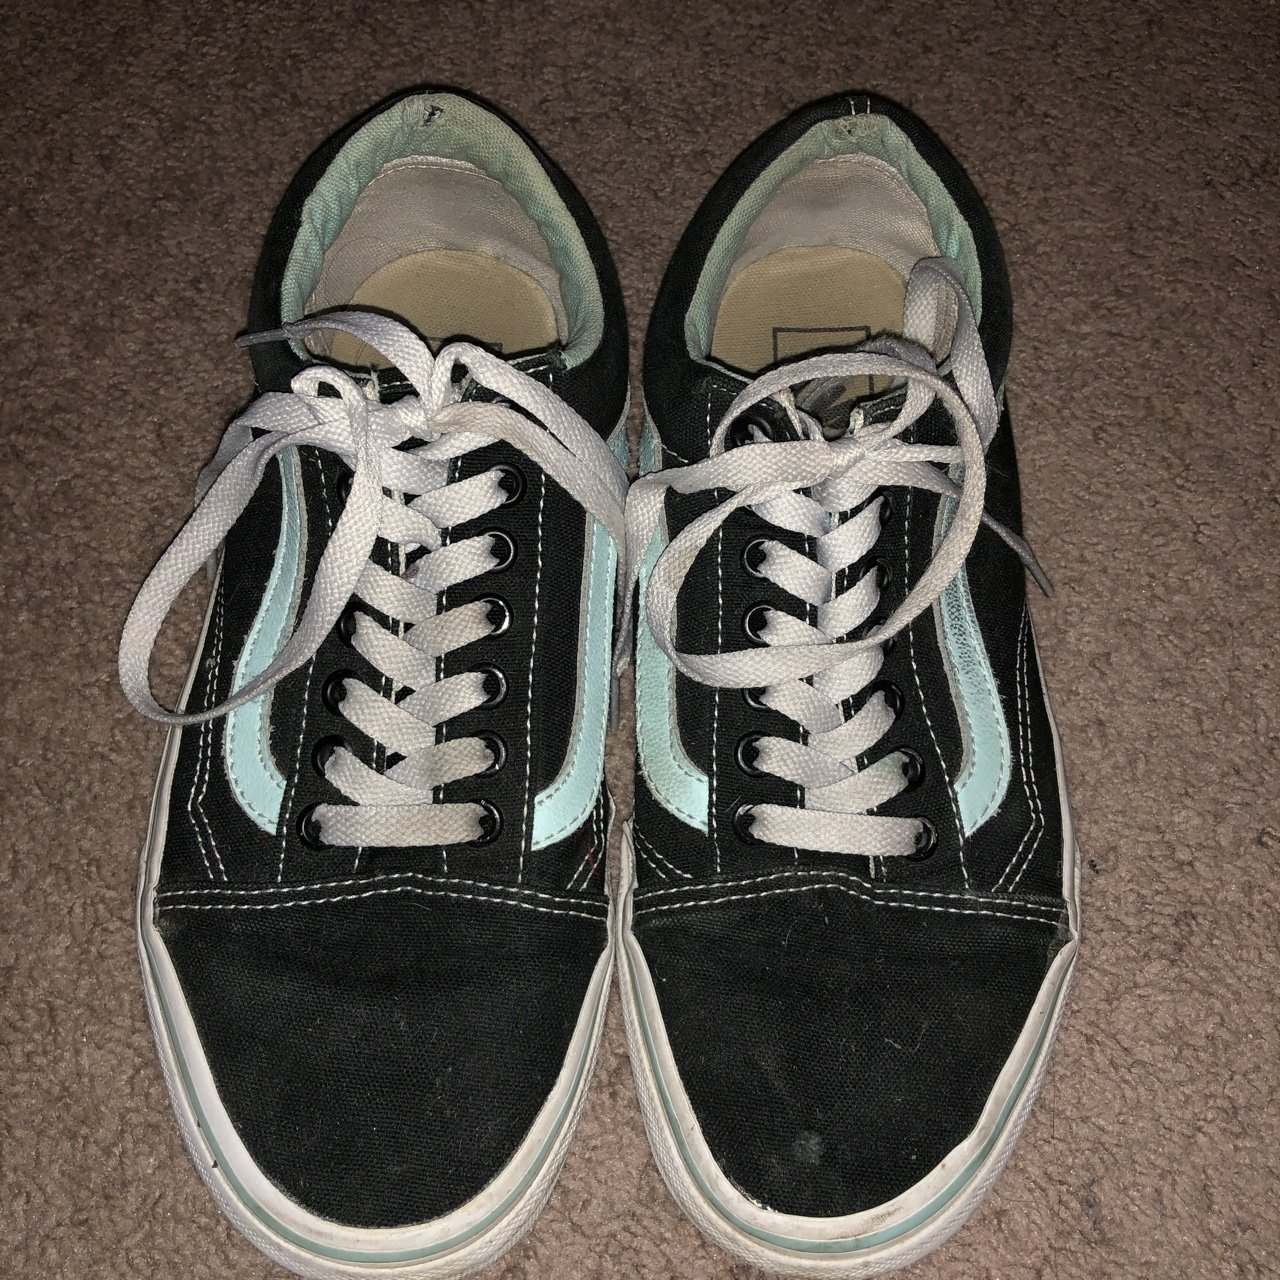 33ae83977f0 VERY WORNED MINT GREEN OLD SKOOL VANS! I ve had these for in - Depop